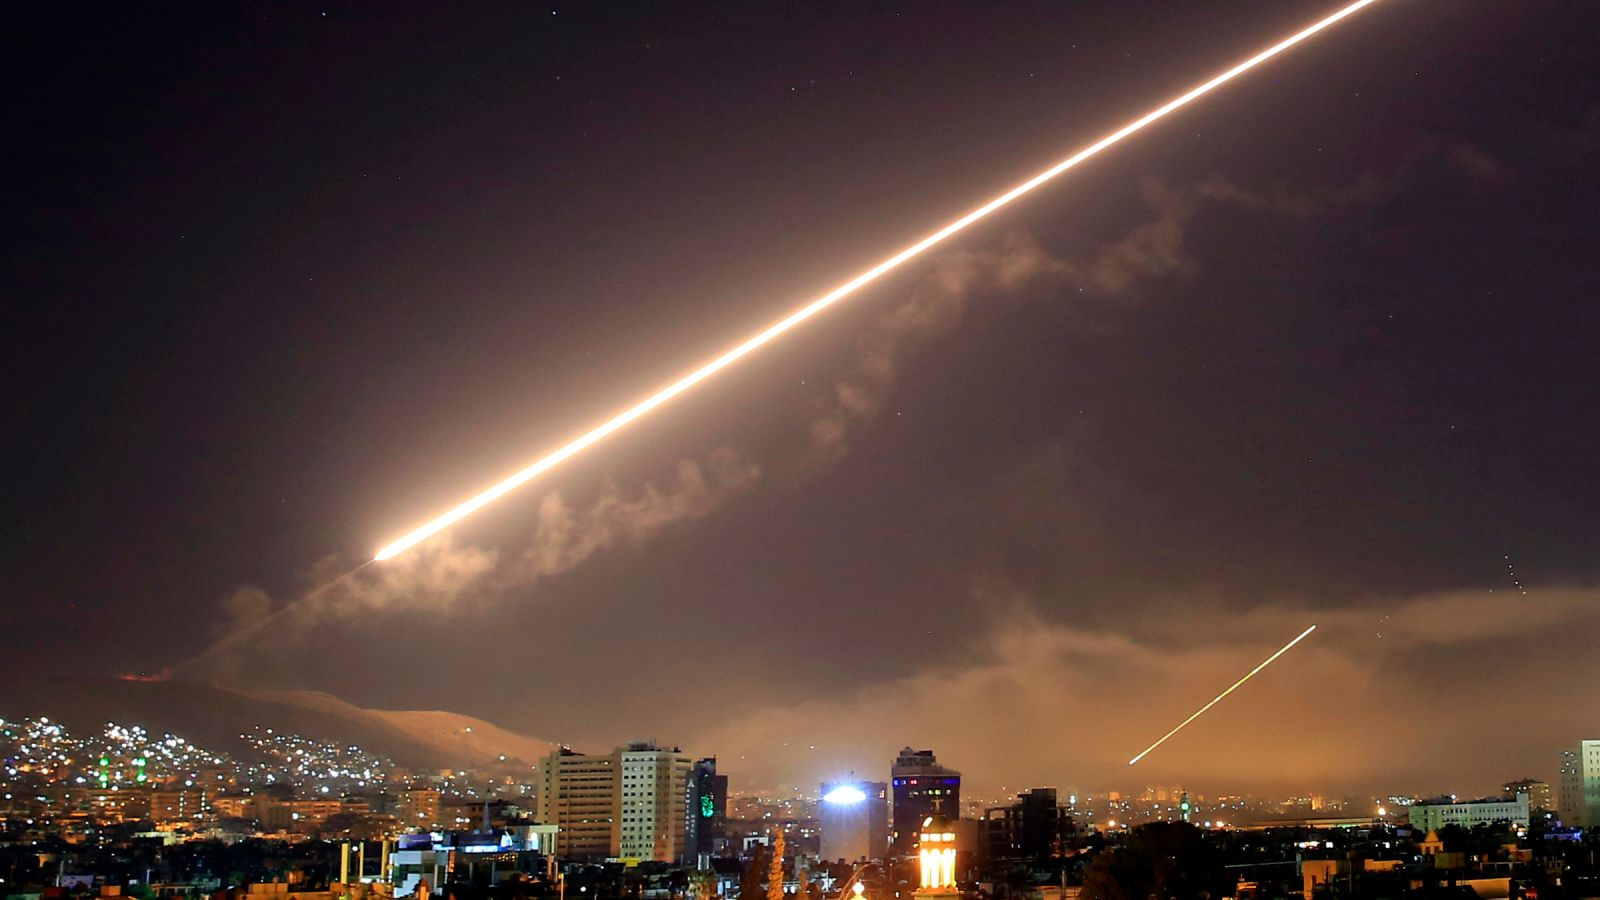 syria-missile-air-strike-chemical-weapons-damascus-trump-assad-putin.jpg